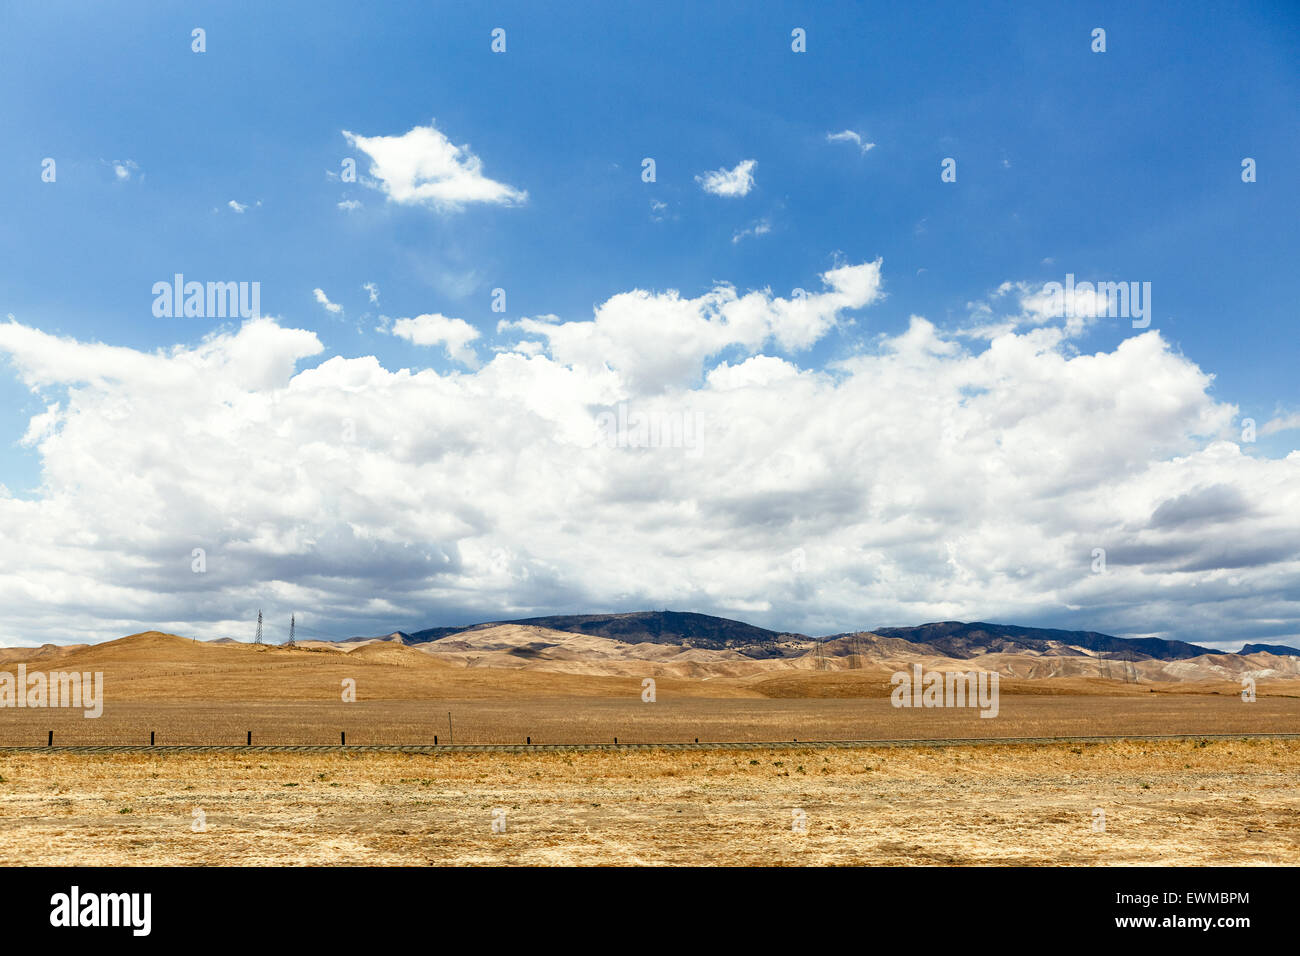 Dramatic photograph of an empty expanse of dry grass with a view of foothills and mountains in the distance - Stock Image